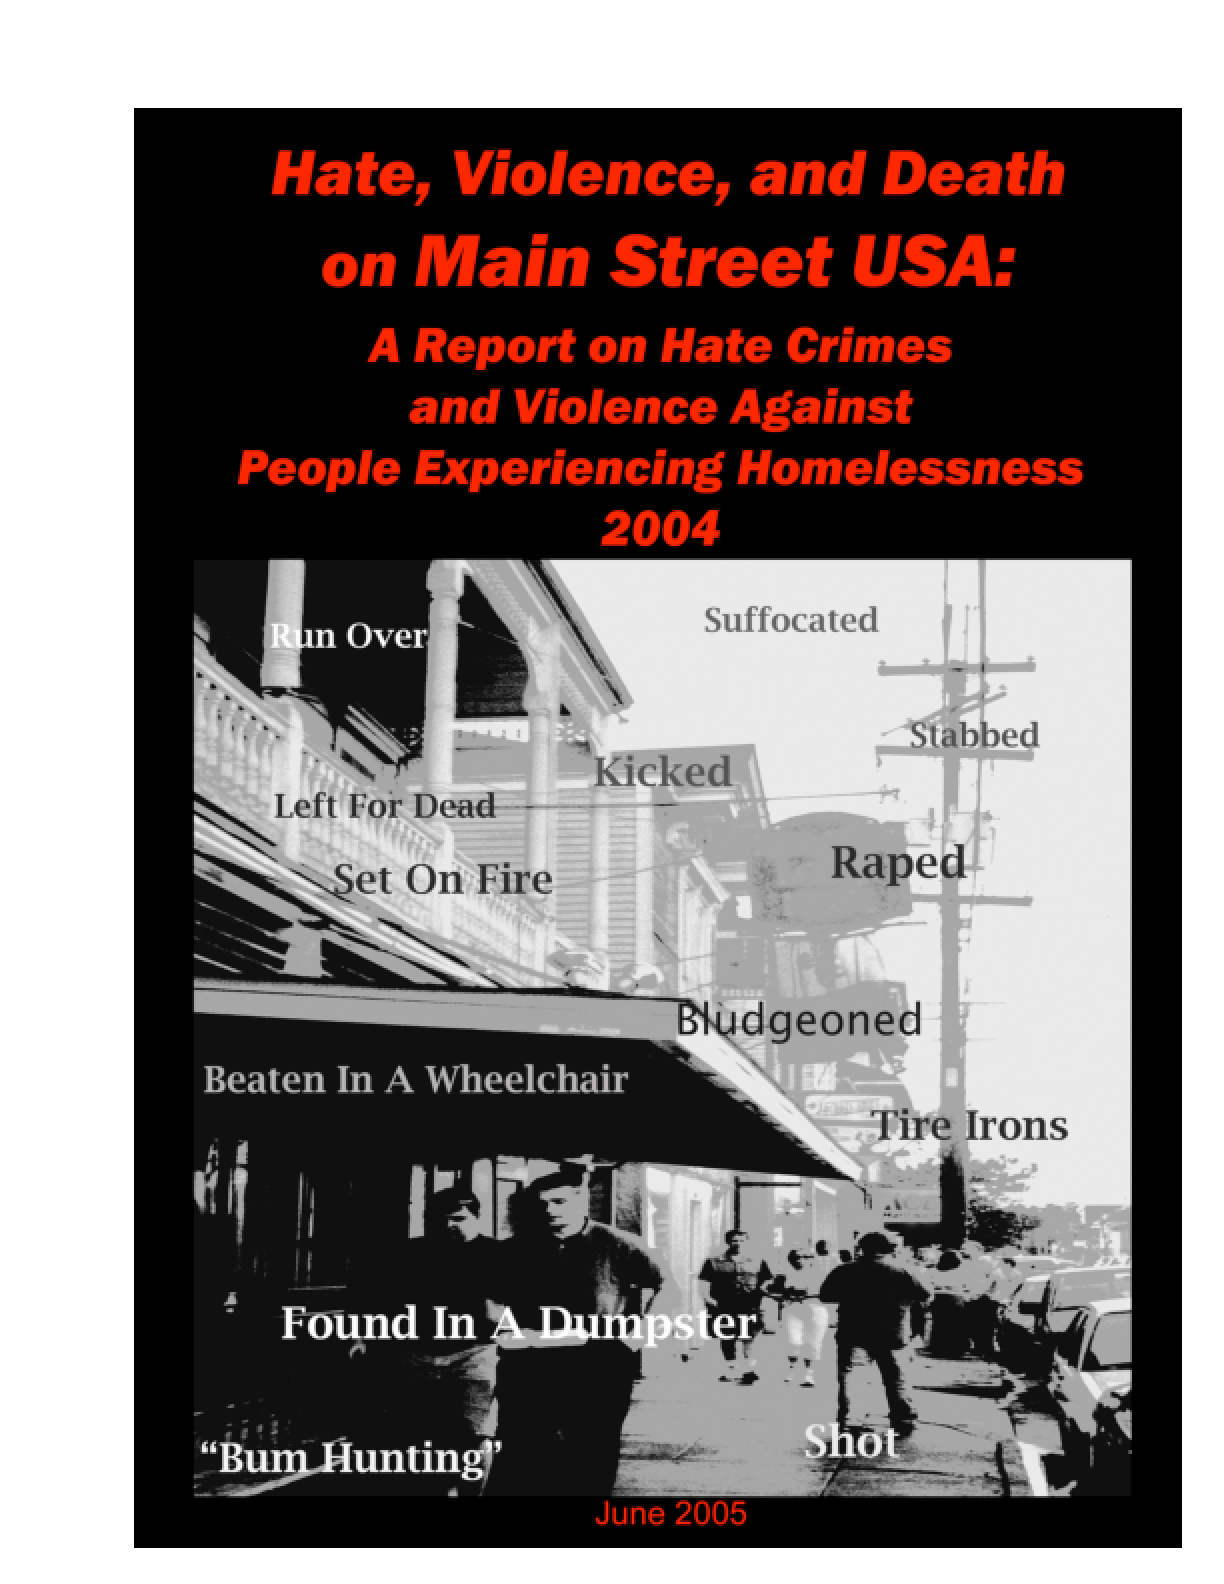 Hate Crimes and Violence Against People Experiencing Homelessness 2004